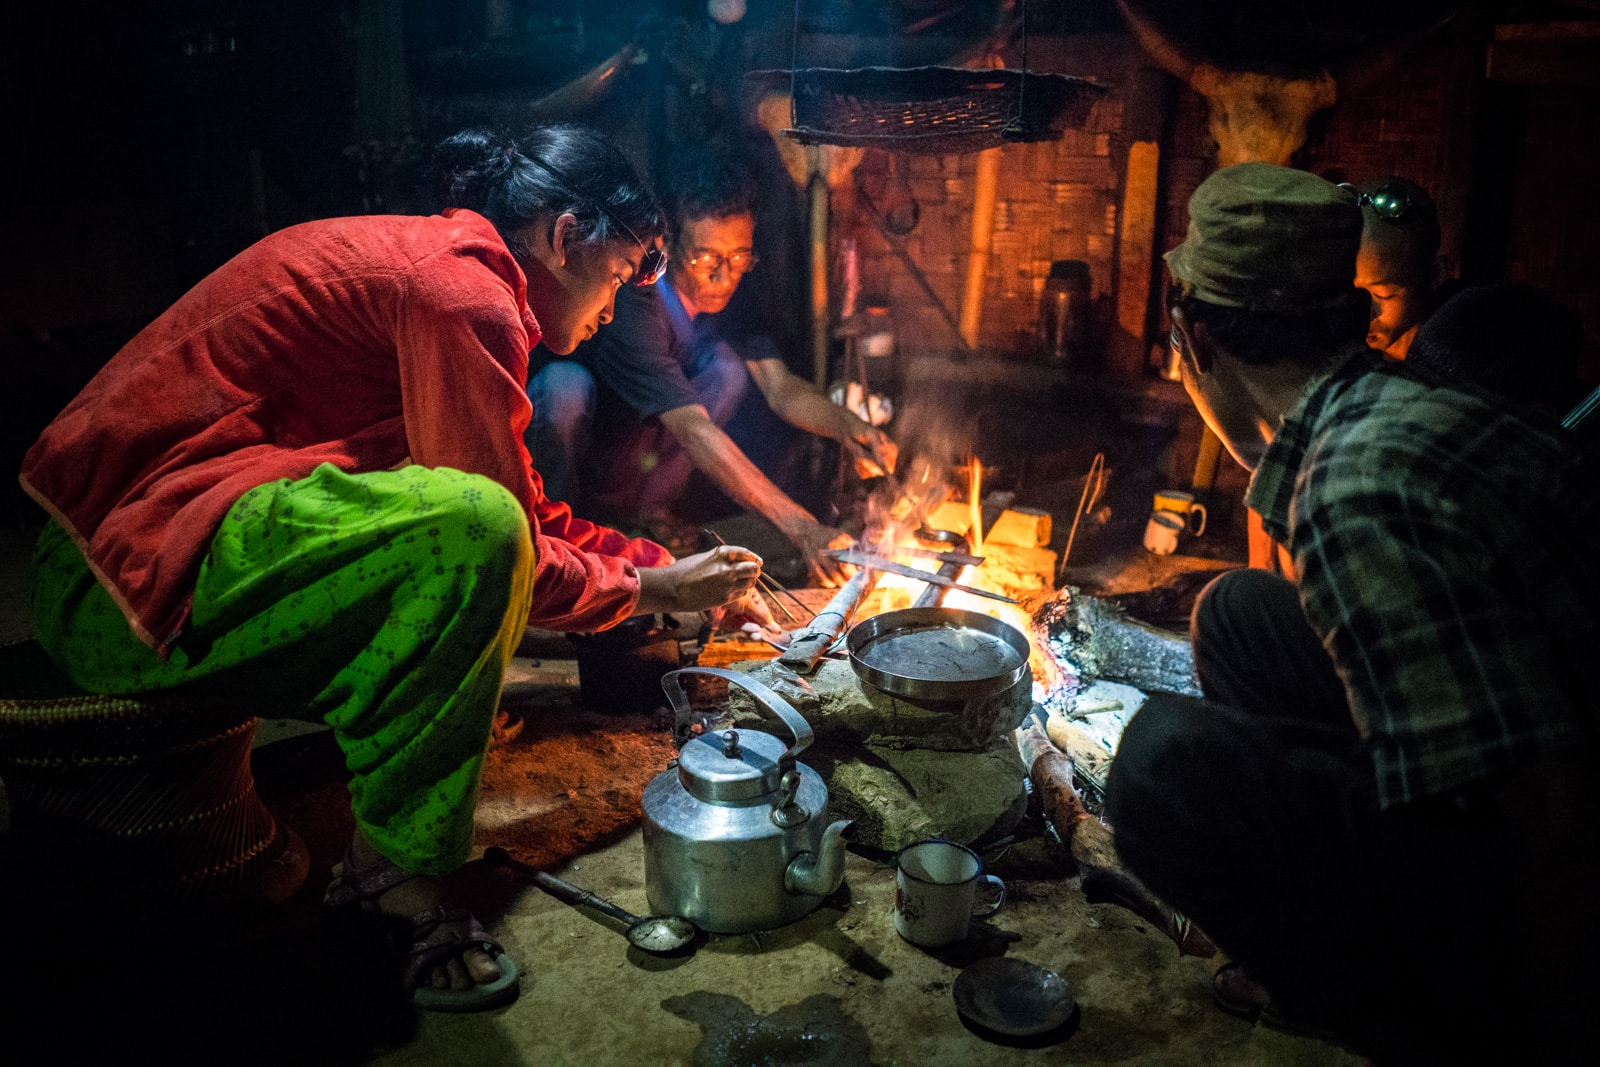 Backpacker cooking opium in Longwa, Nagaland, India with a headlamp